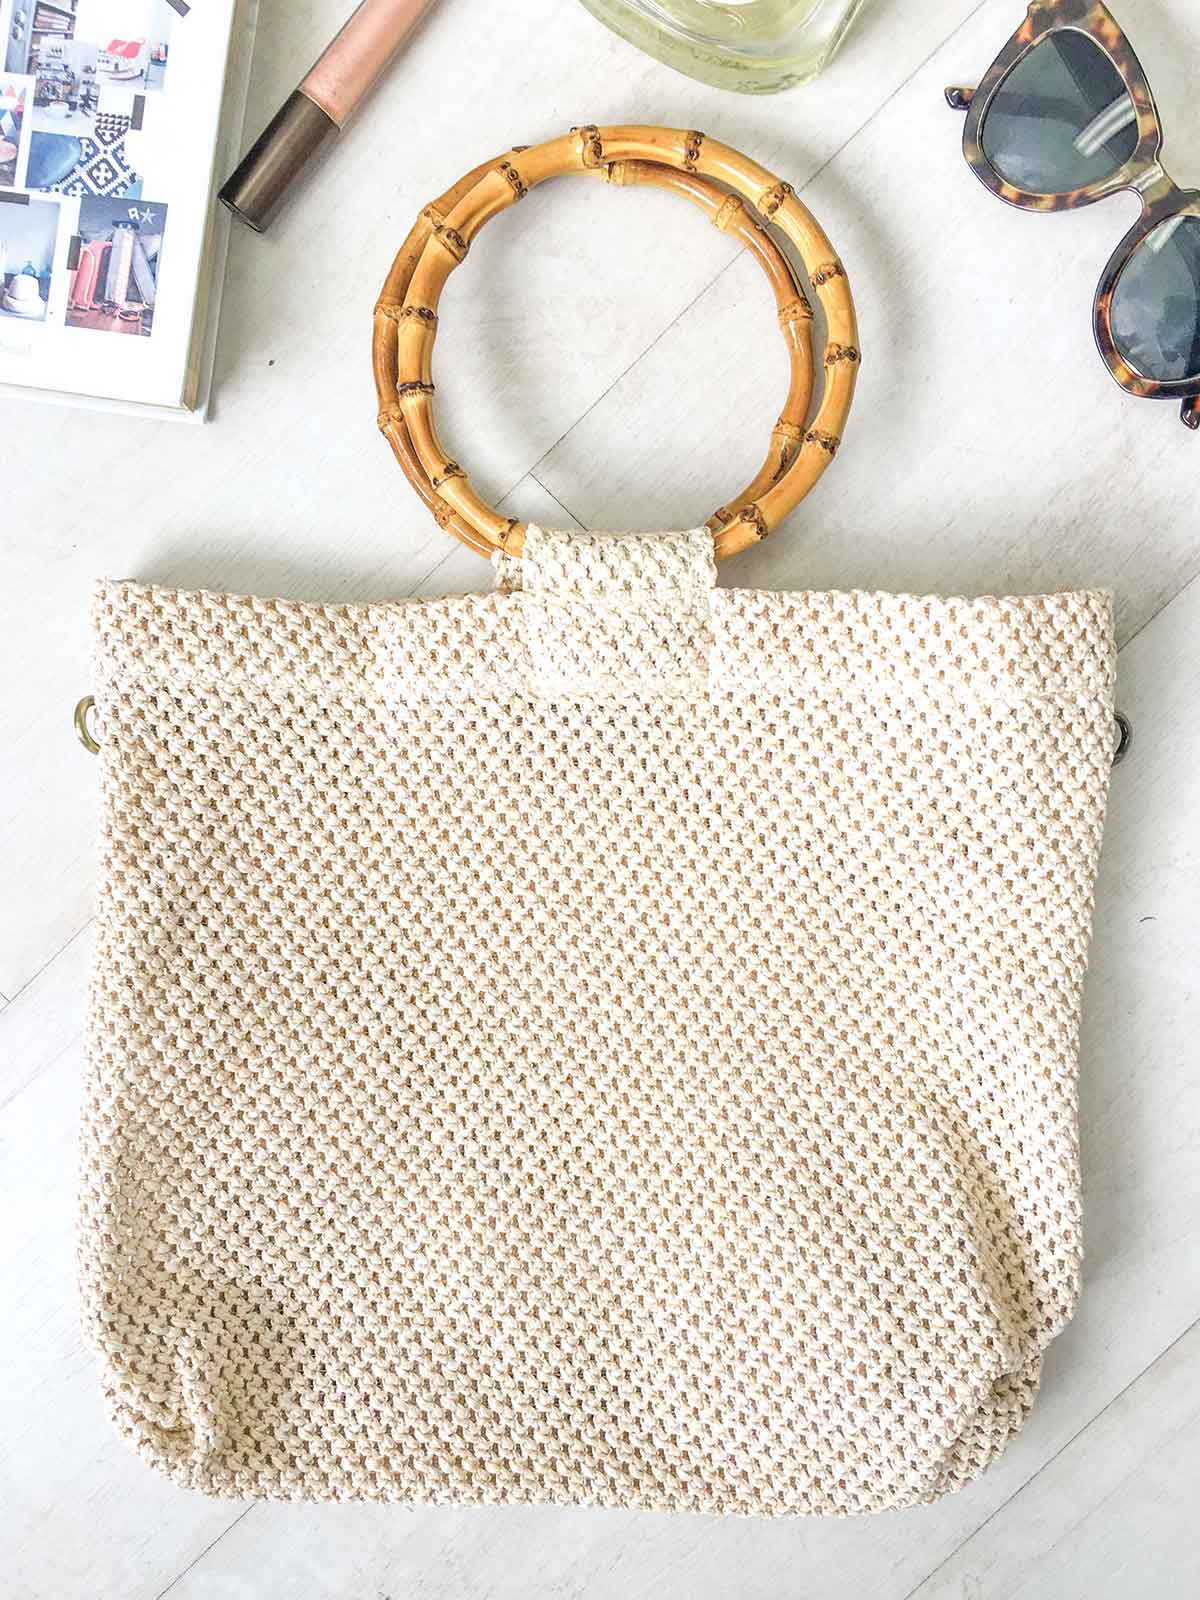 GYPSY COLLECTIVE BAMBOO HANDLE TOTE